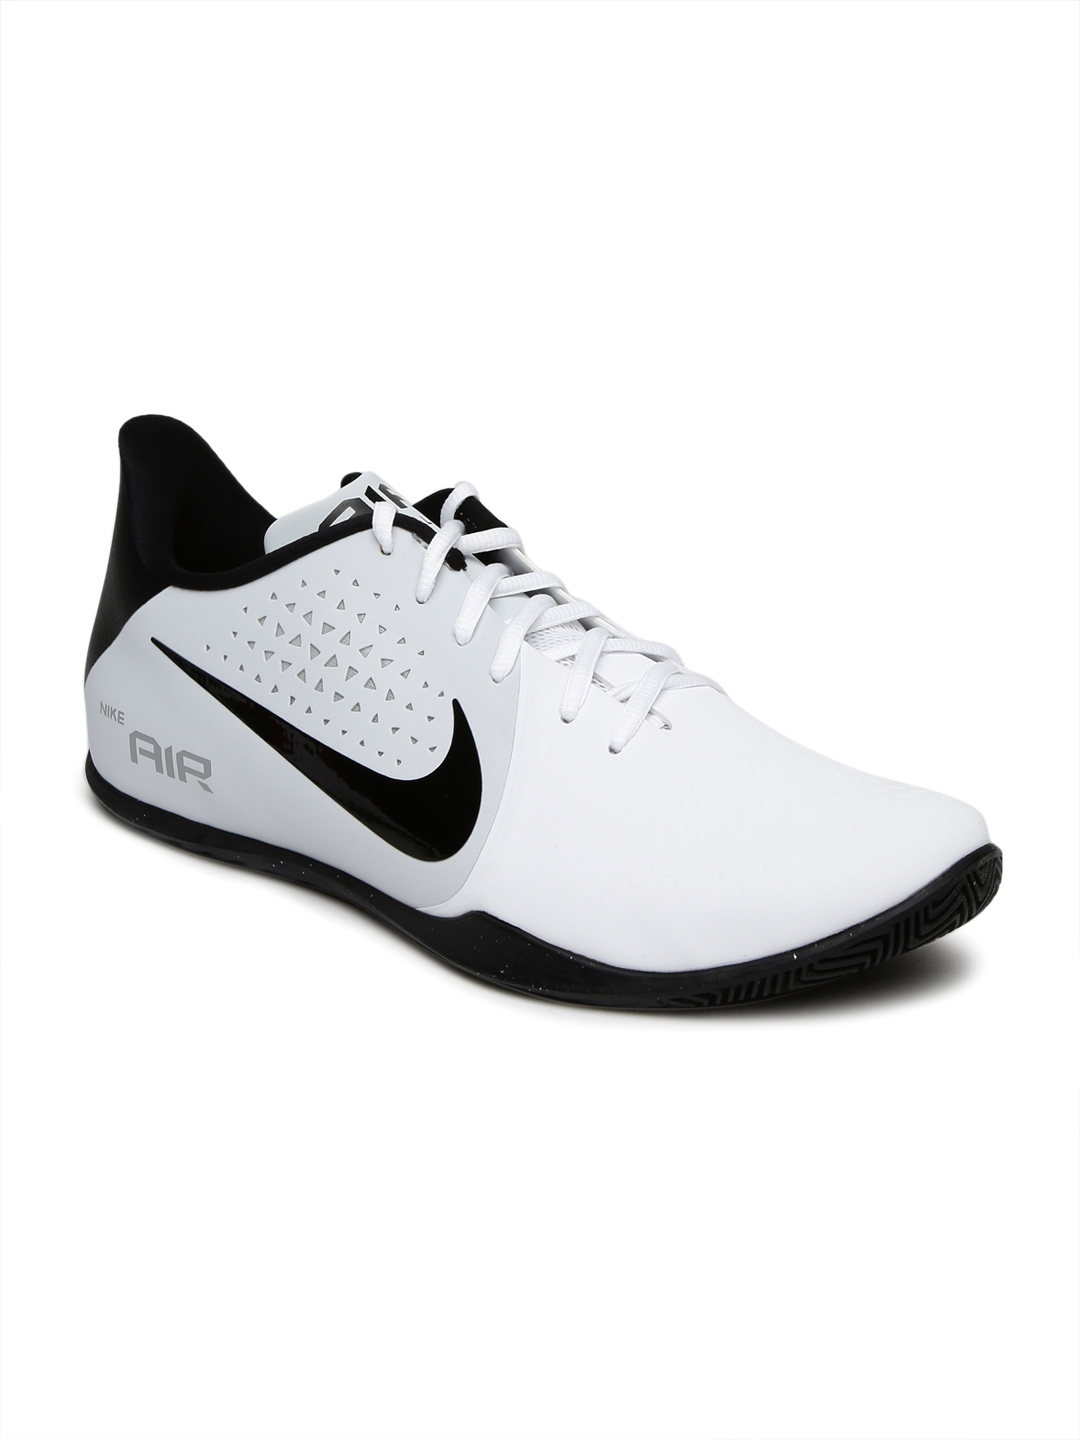 the latest 1a599 44384 11493284429823-Nike-Men-White--Black-Air-Behold-Low-Basketball-Shoes -241493284429706-1.jpg